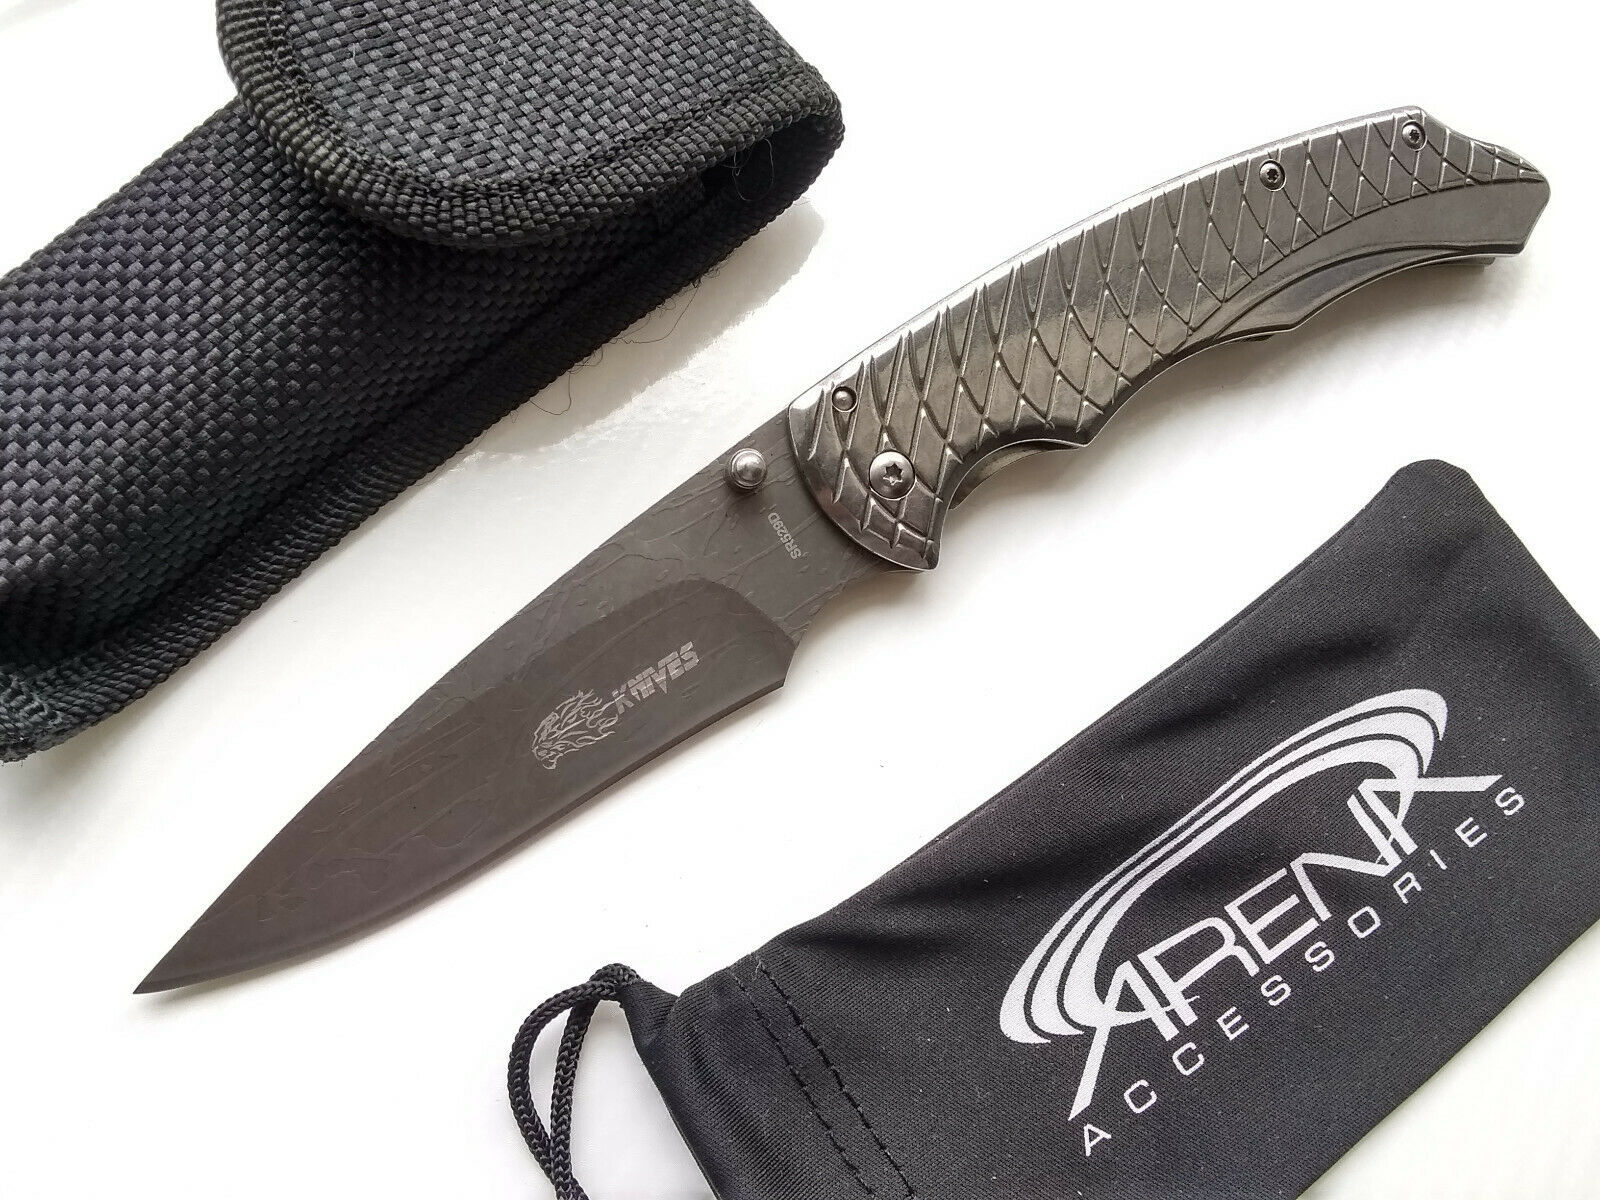 SR Knives 529D Framelock Pocket Knife with Textured Blade Grooved Handle & Slim Construction